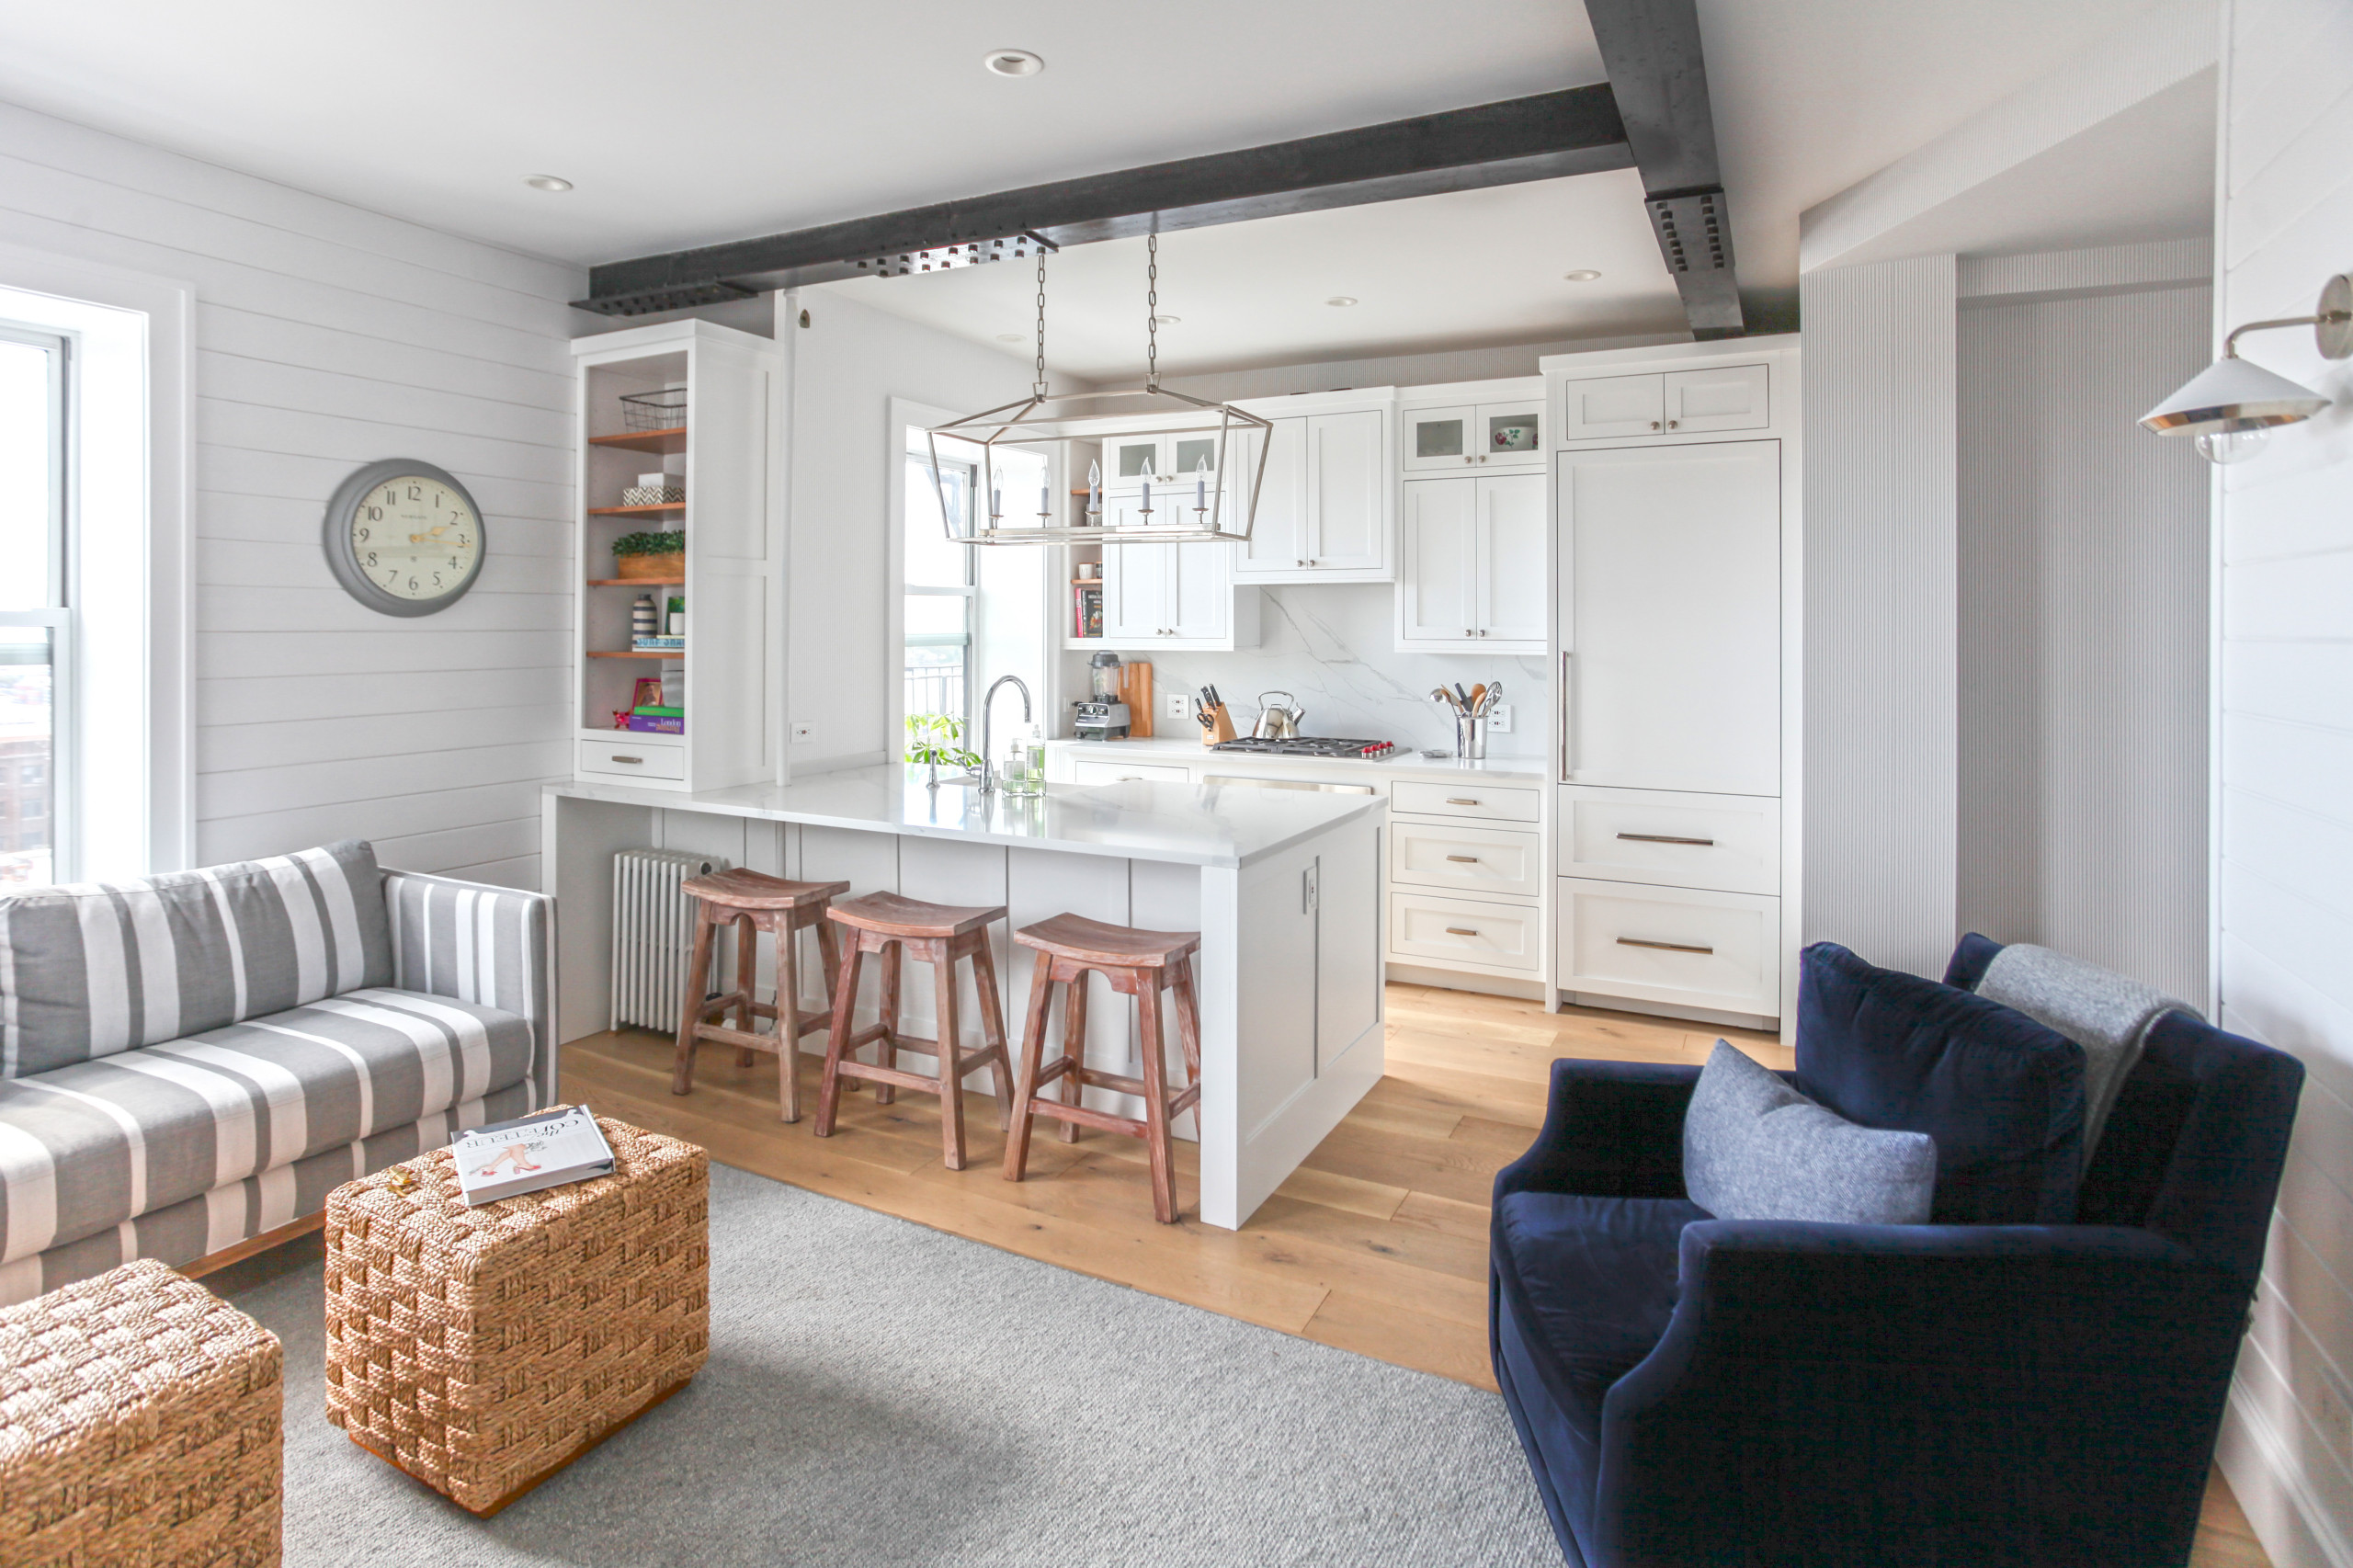 9 Beautiful Small Coastal Kitchen Pictures & Ideas   July, 9 ...